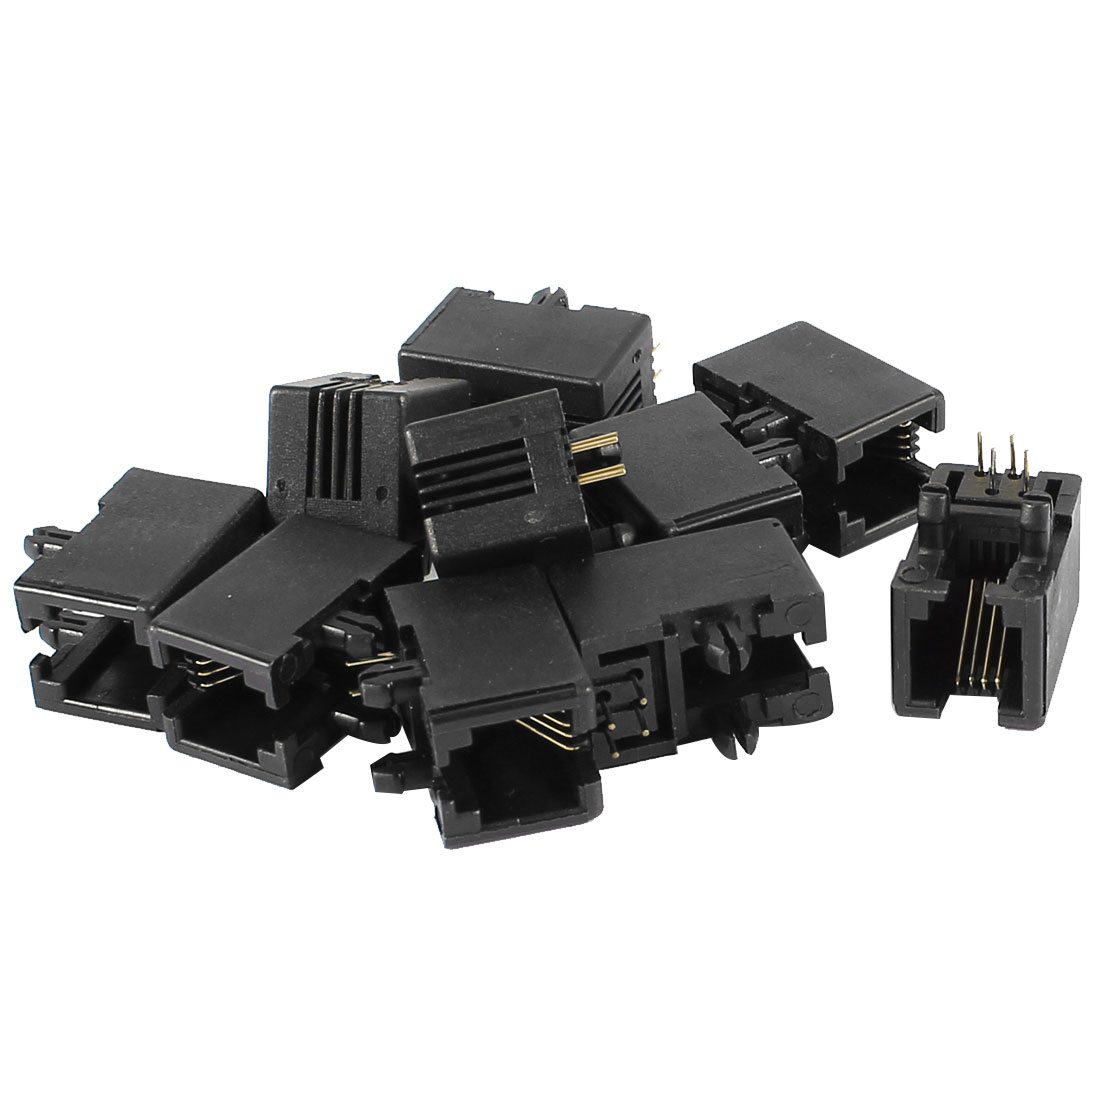 10pcs RJ11 PCB Mount Black Modular Jack 4P4C Telephone Socket Connector